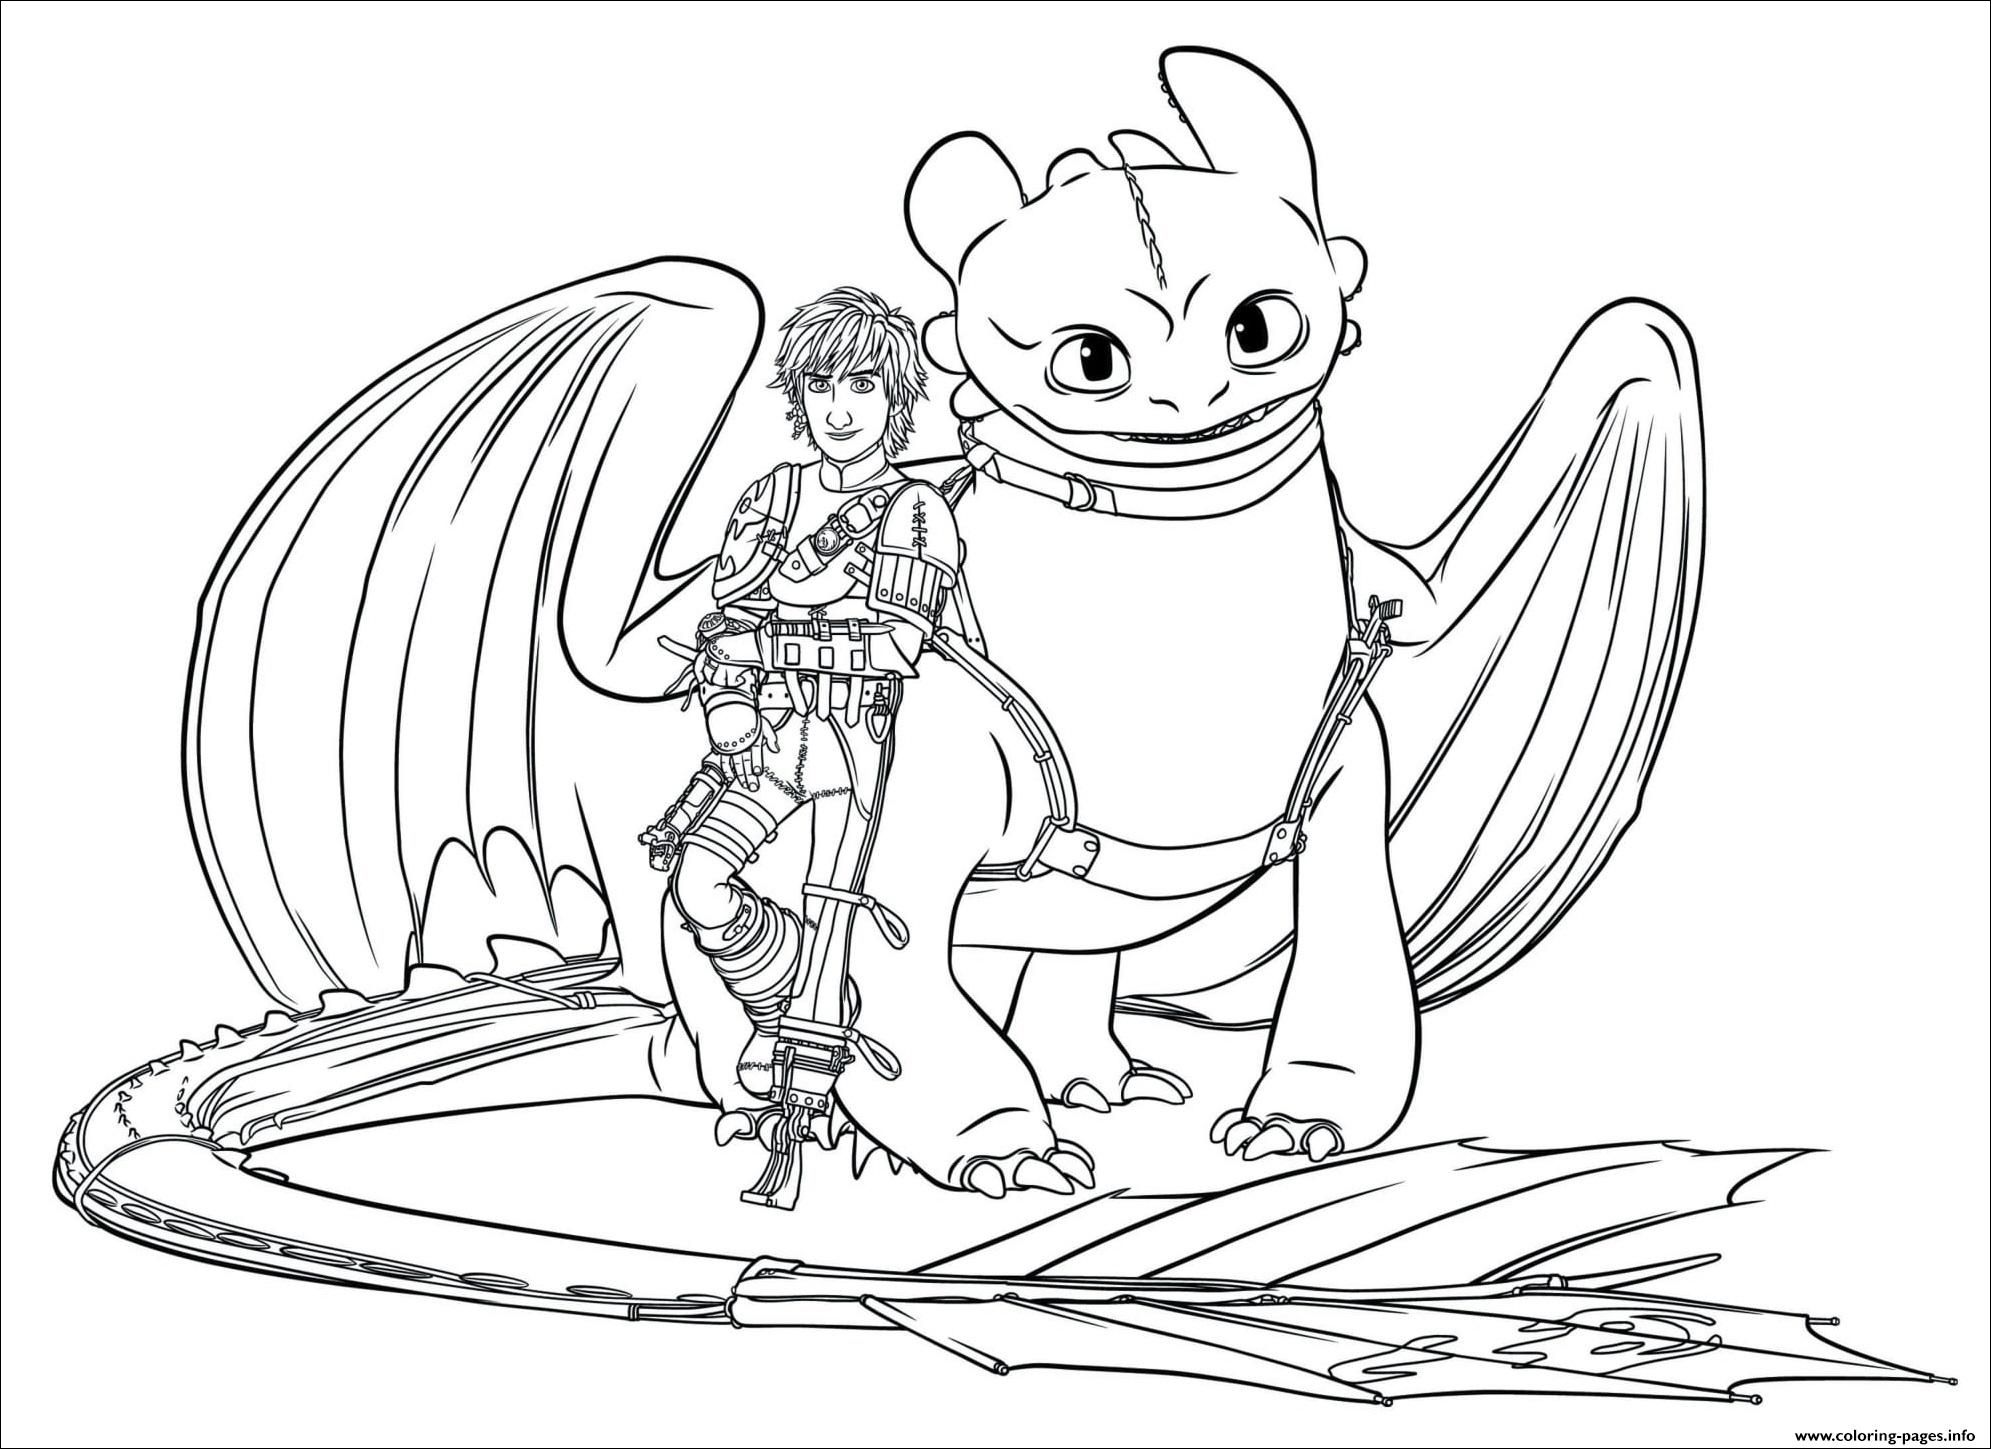 322 Nice Dragon 32 Coloriage Pictures